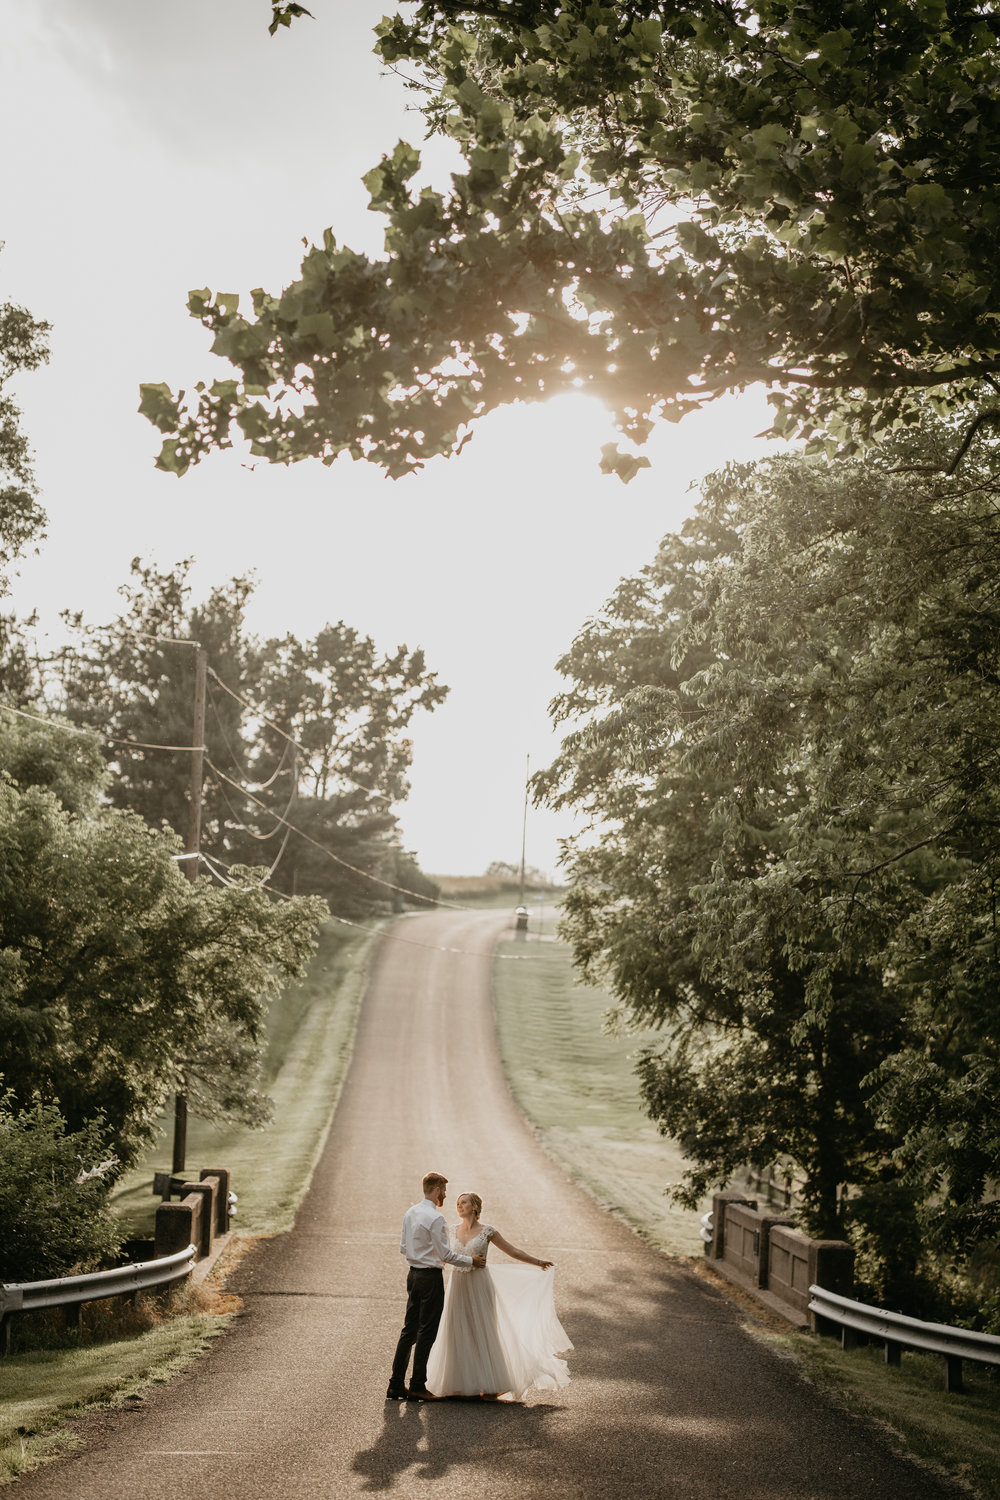 Nicole-Daacke-Photography-pennsylvania-laid-back-outside-backyard-wedding-family-summer-june-maryland-barefoot-bride-woodland-trees-sunset-couple-75.jpg